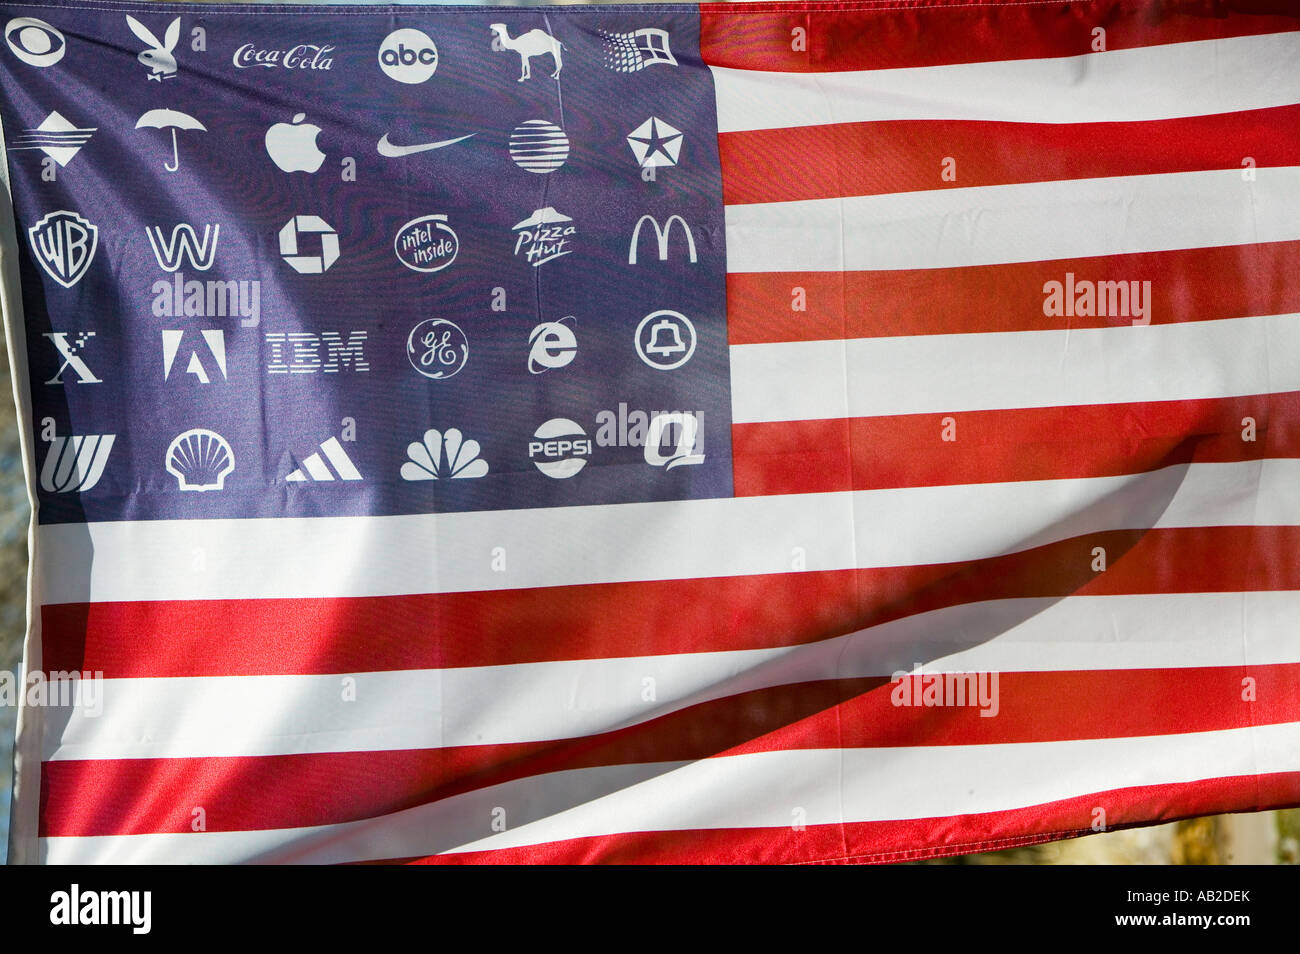 2a3d6e02887 Corporate logos in place of stars on the American flag symbolize allegiance  to and dominance of Corporate America